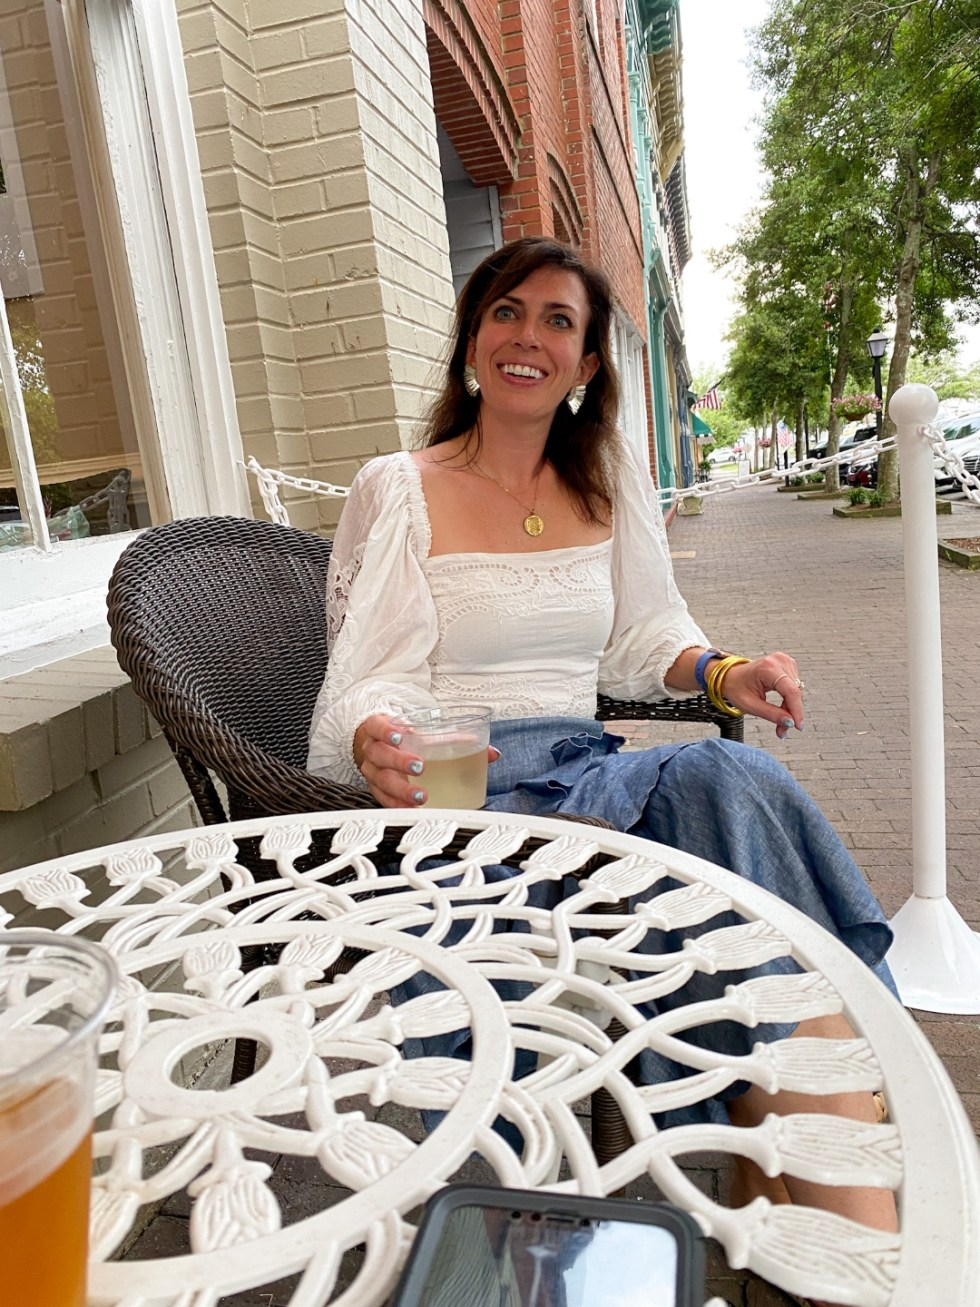 Edenton Travel Guide by popular NC travel guid, I'm Fixin' To: image of a woman sitting in a wicker chair and holding a drink in her hand.